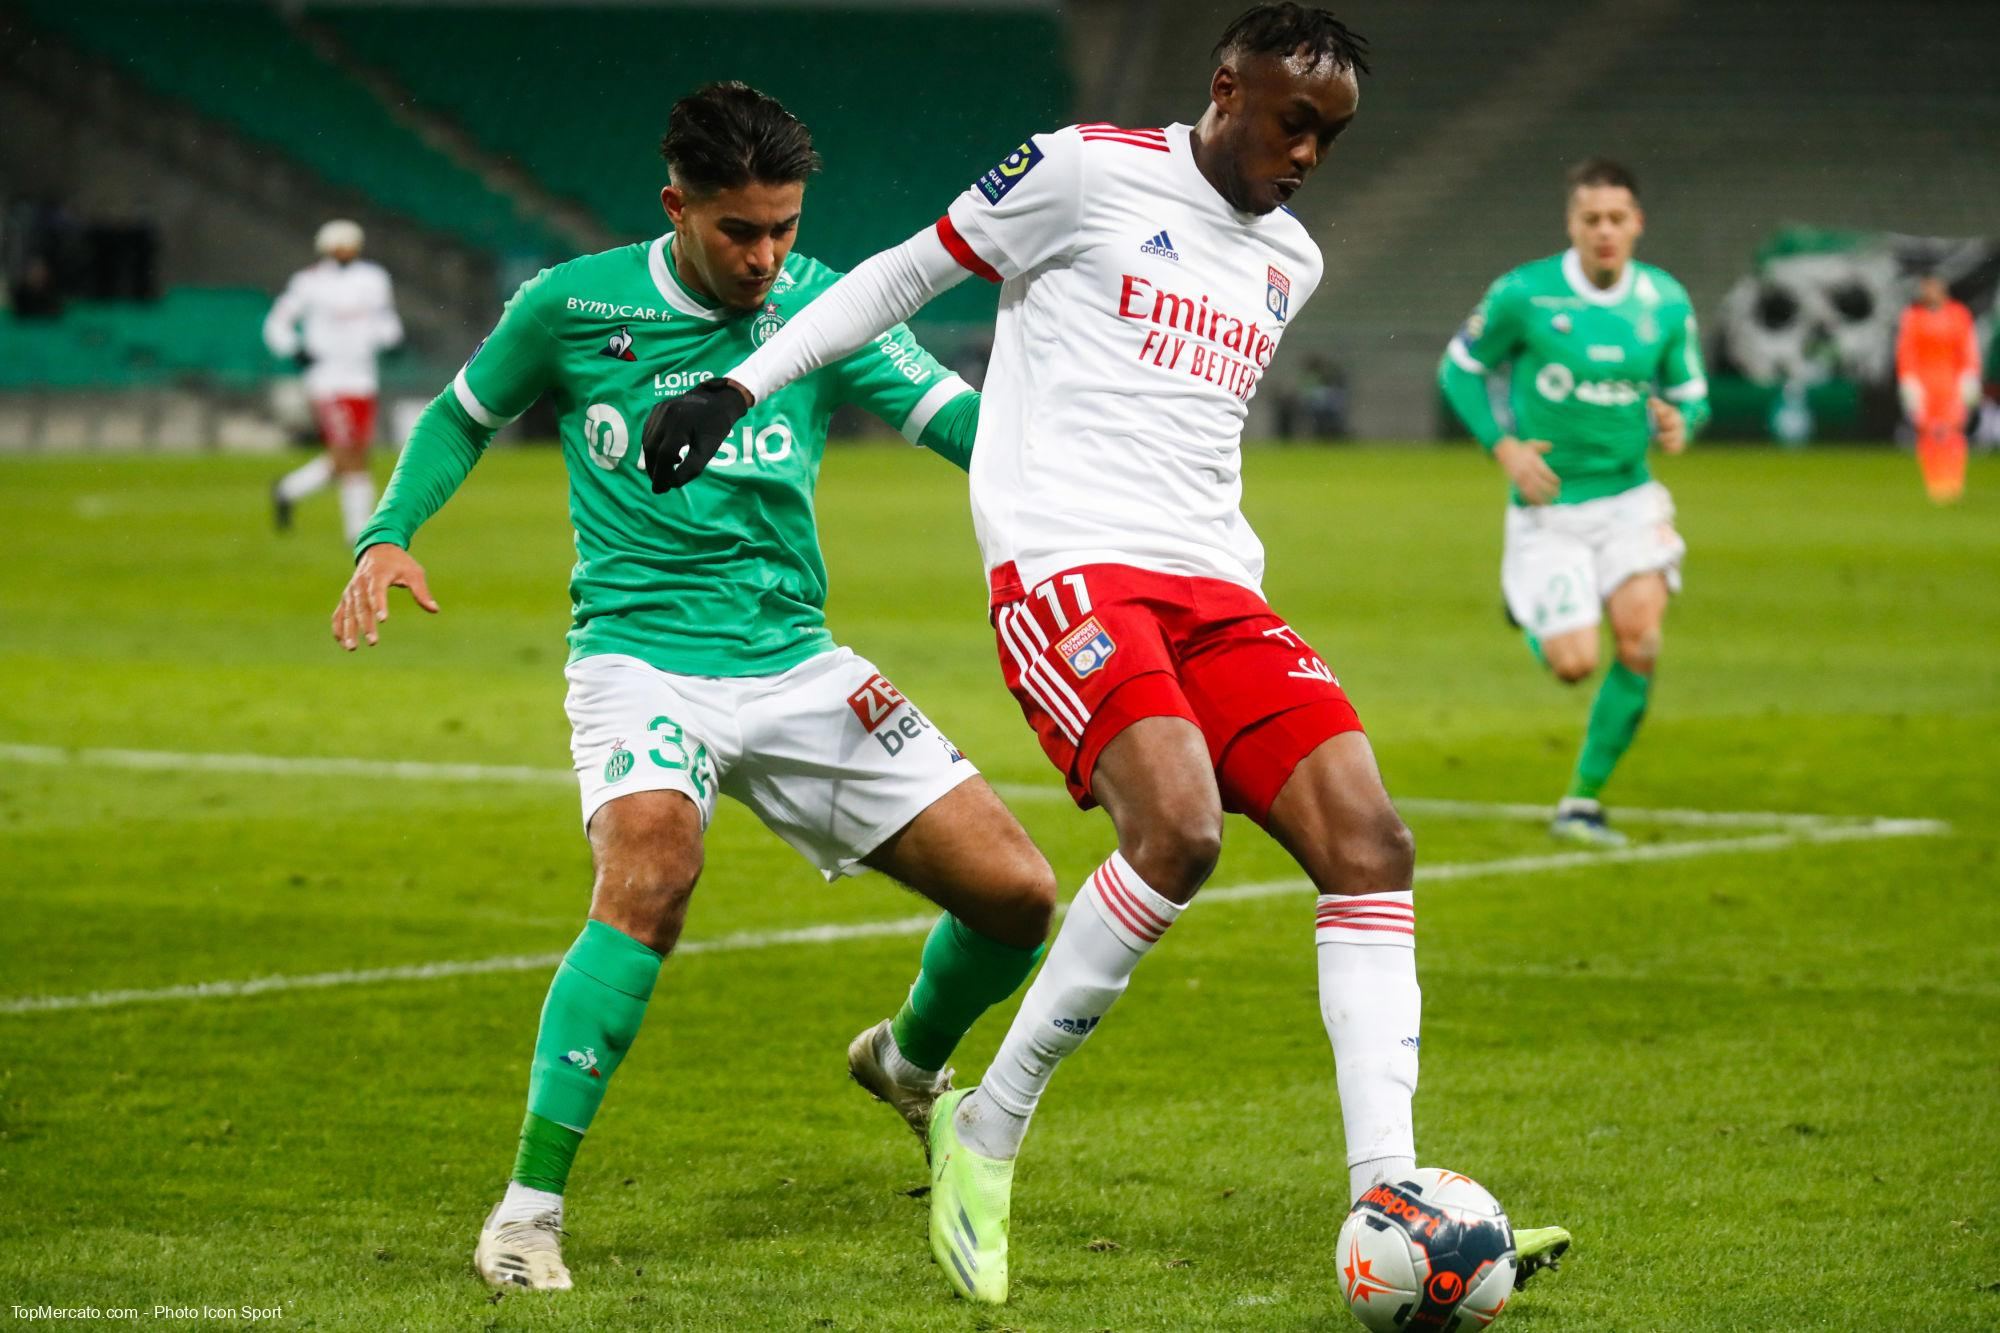 Etienne – Lyon: official traces, channel and match time